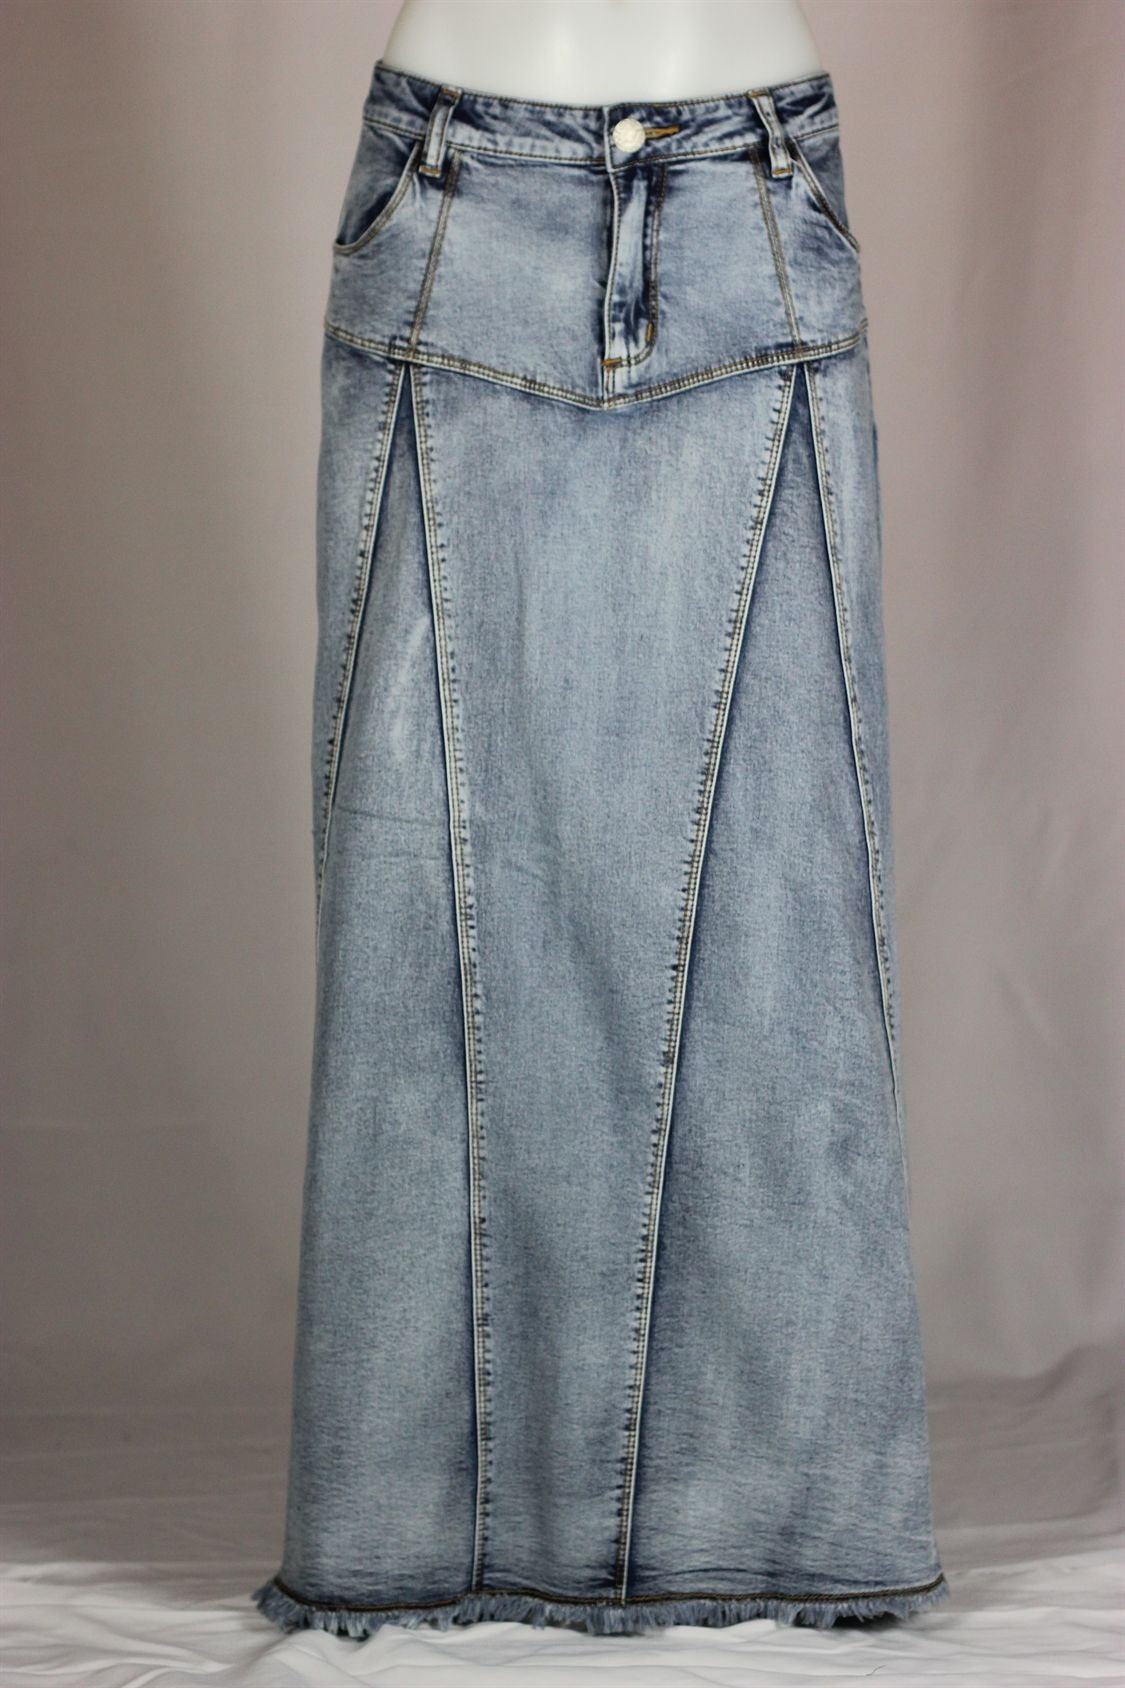 Make a Denim Skirt From Recycled Jeans | Bling